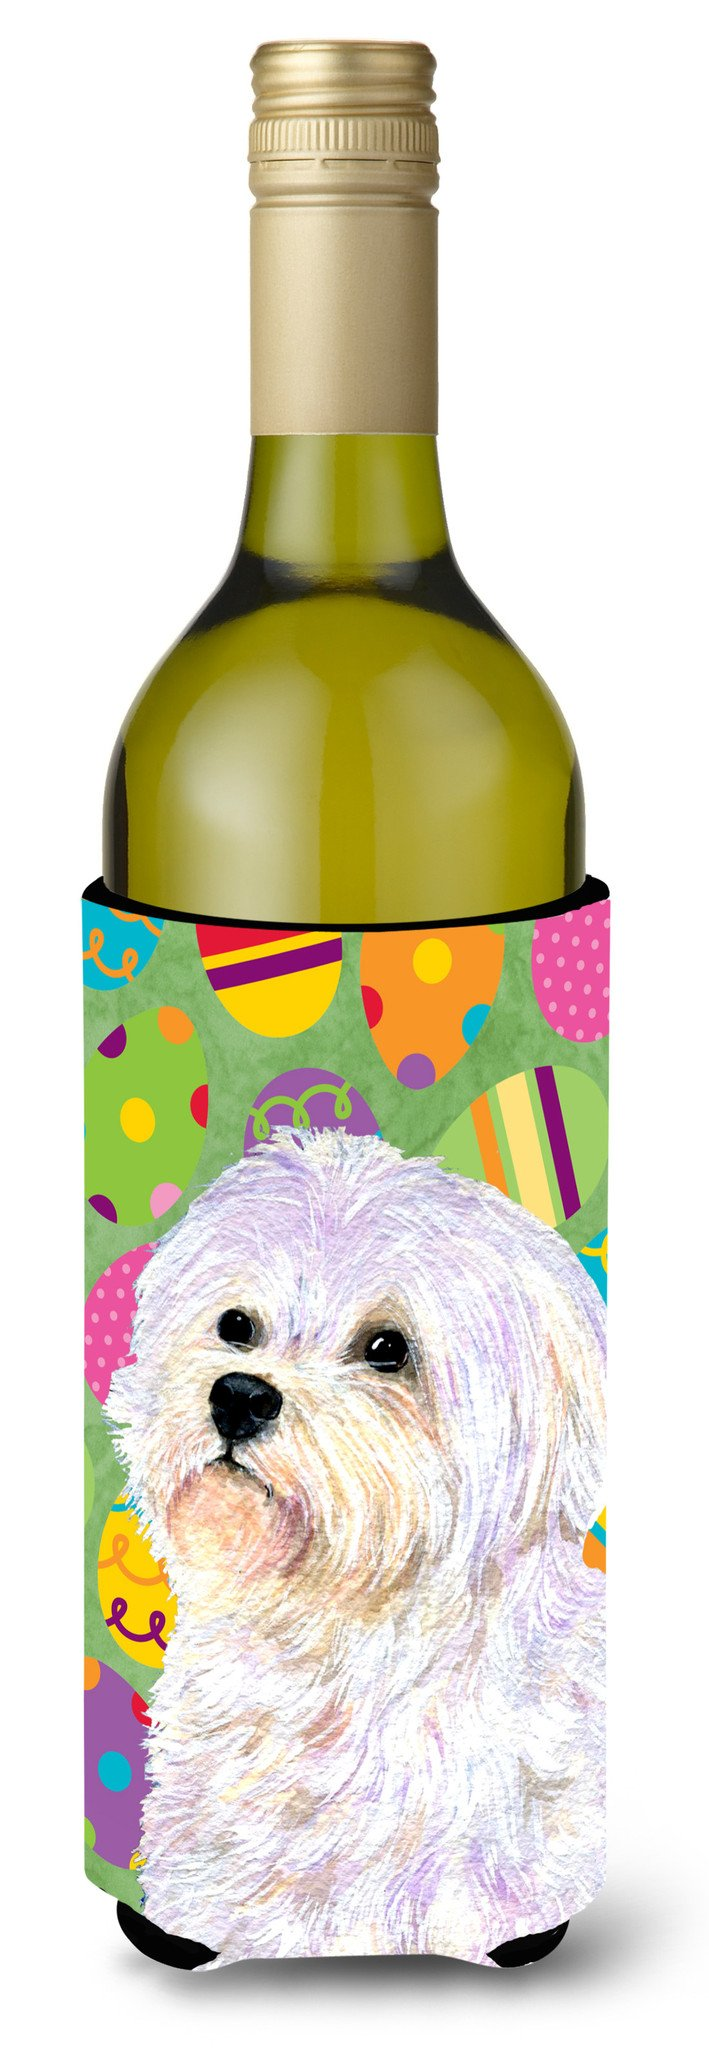 Maltese Easter Eggtravaganza Wine Bottle Beverage Insulator Beverage Insulator Hugger by Caroline's Treasures